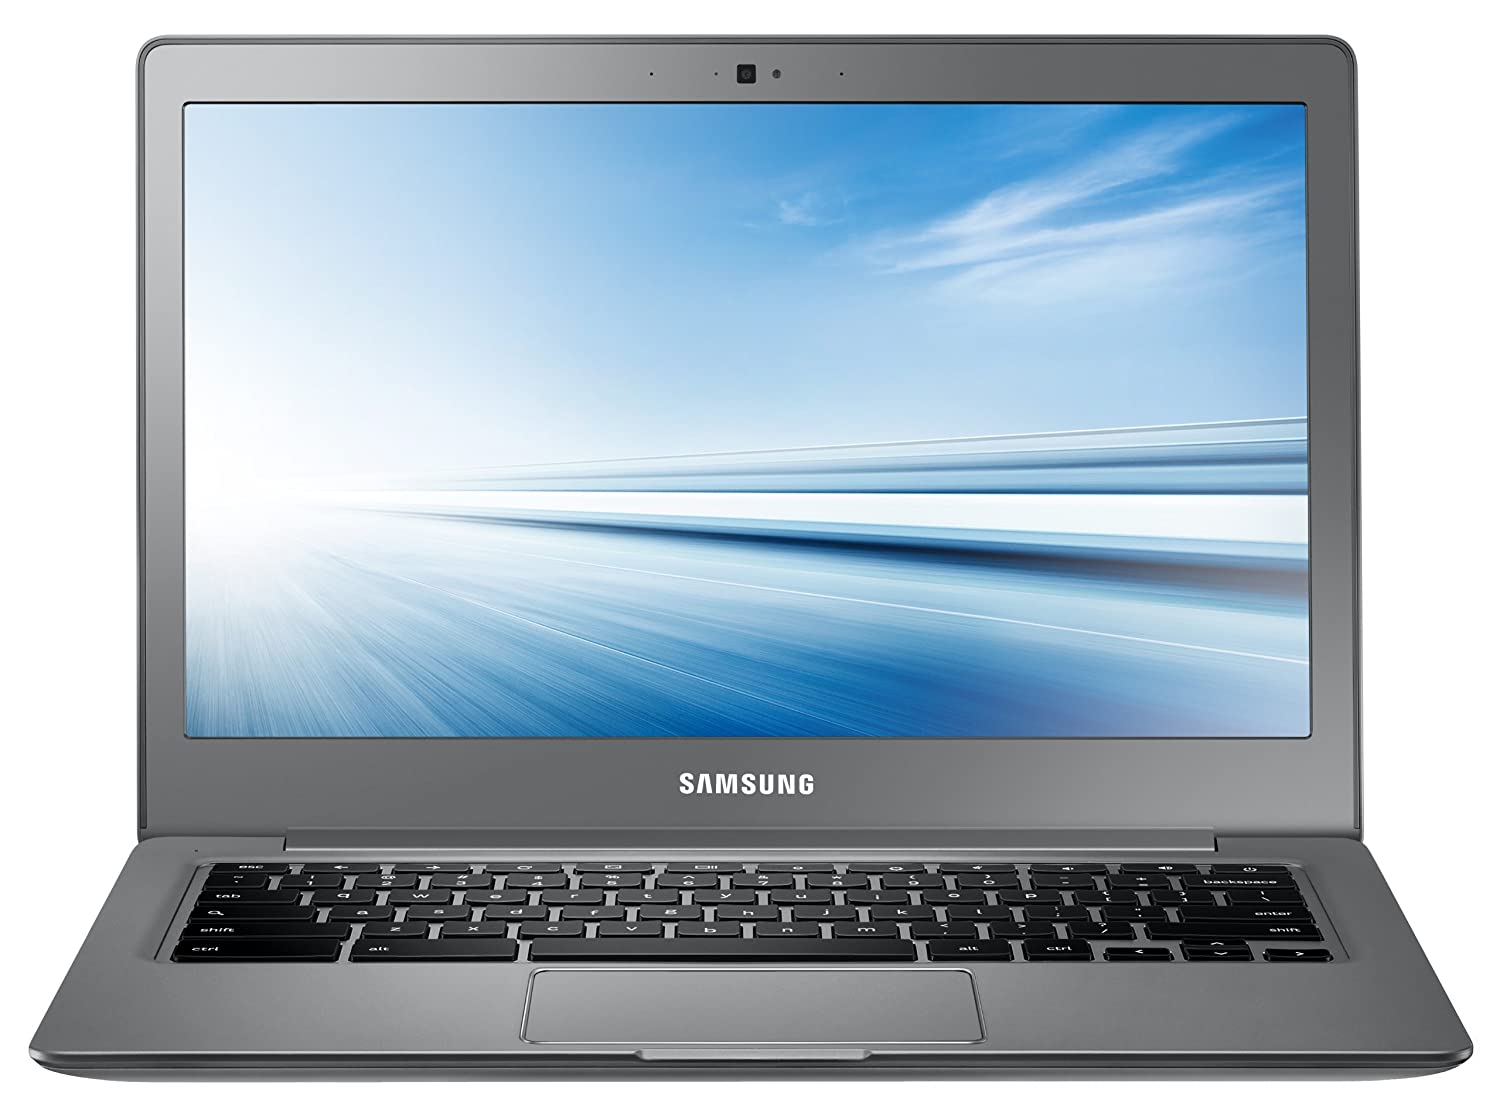 The Samsung Chromebook 2 features a 13.3-inch screen with many upgrades.